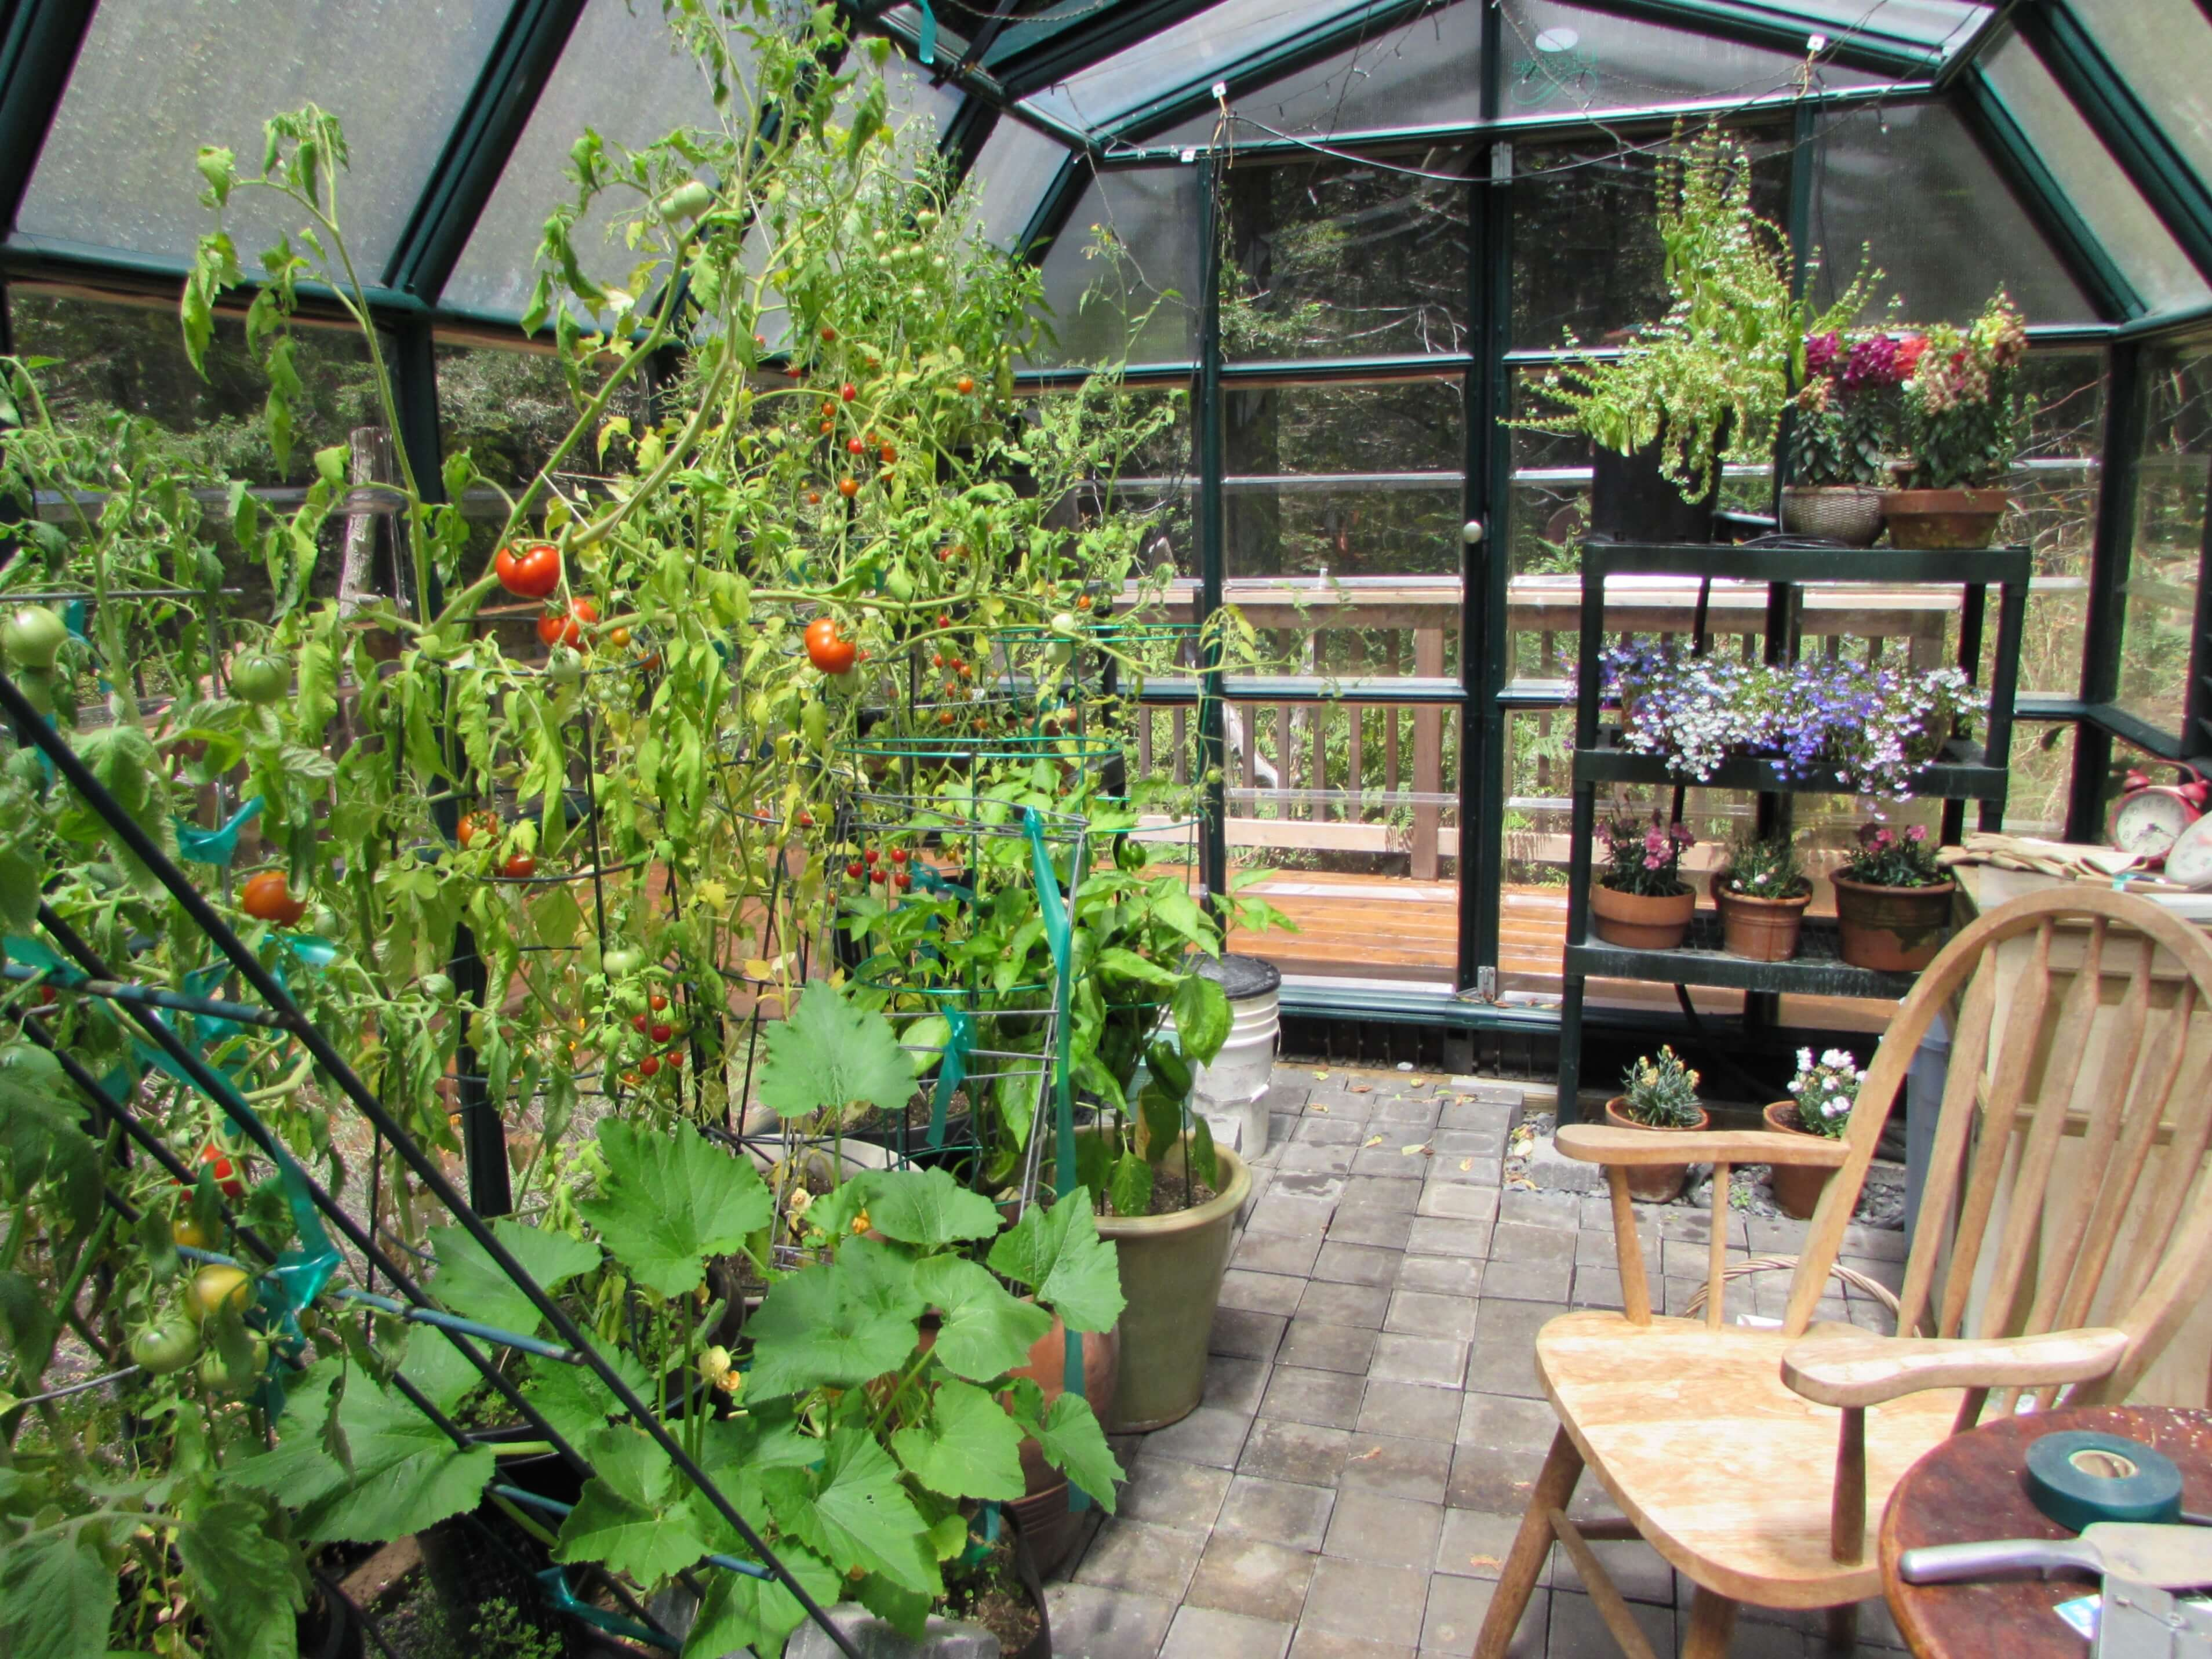 Vegetables growing in a large greenhouse